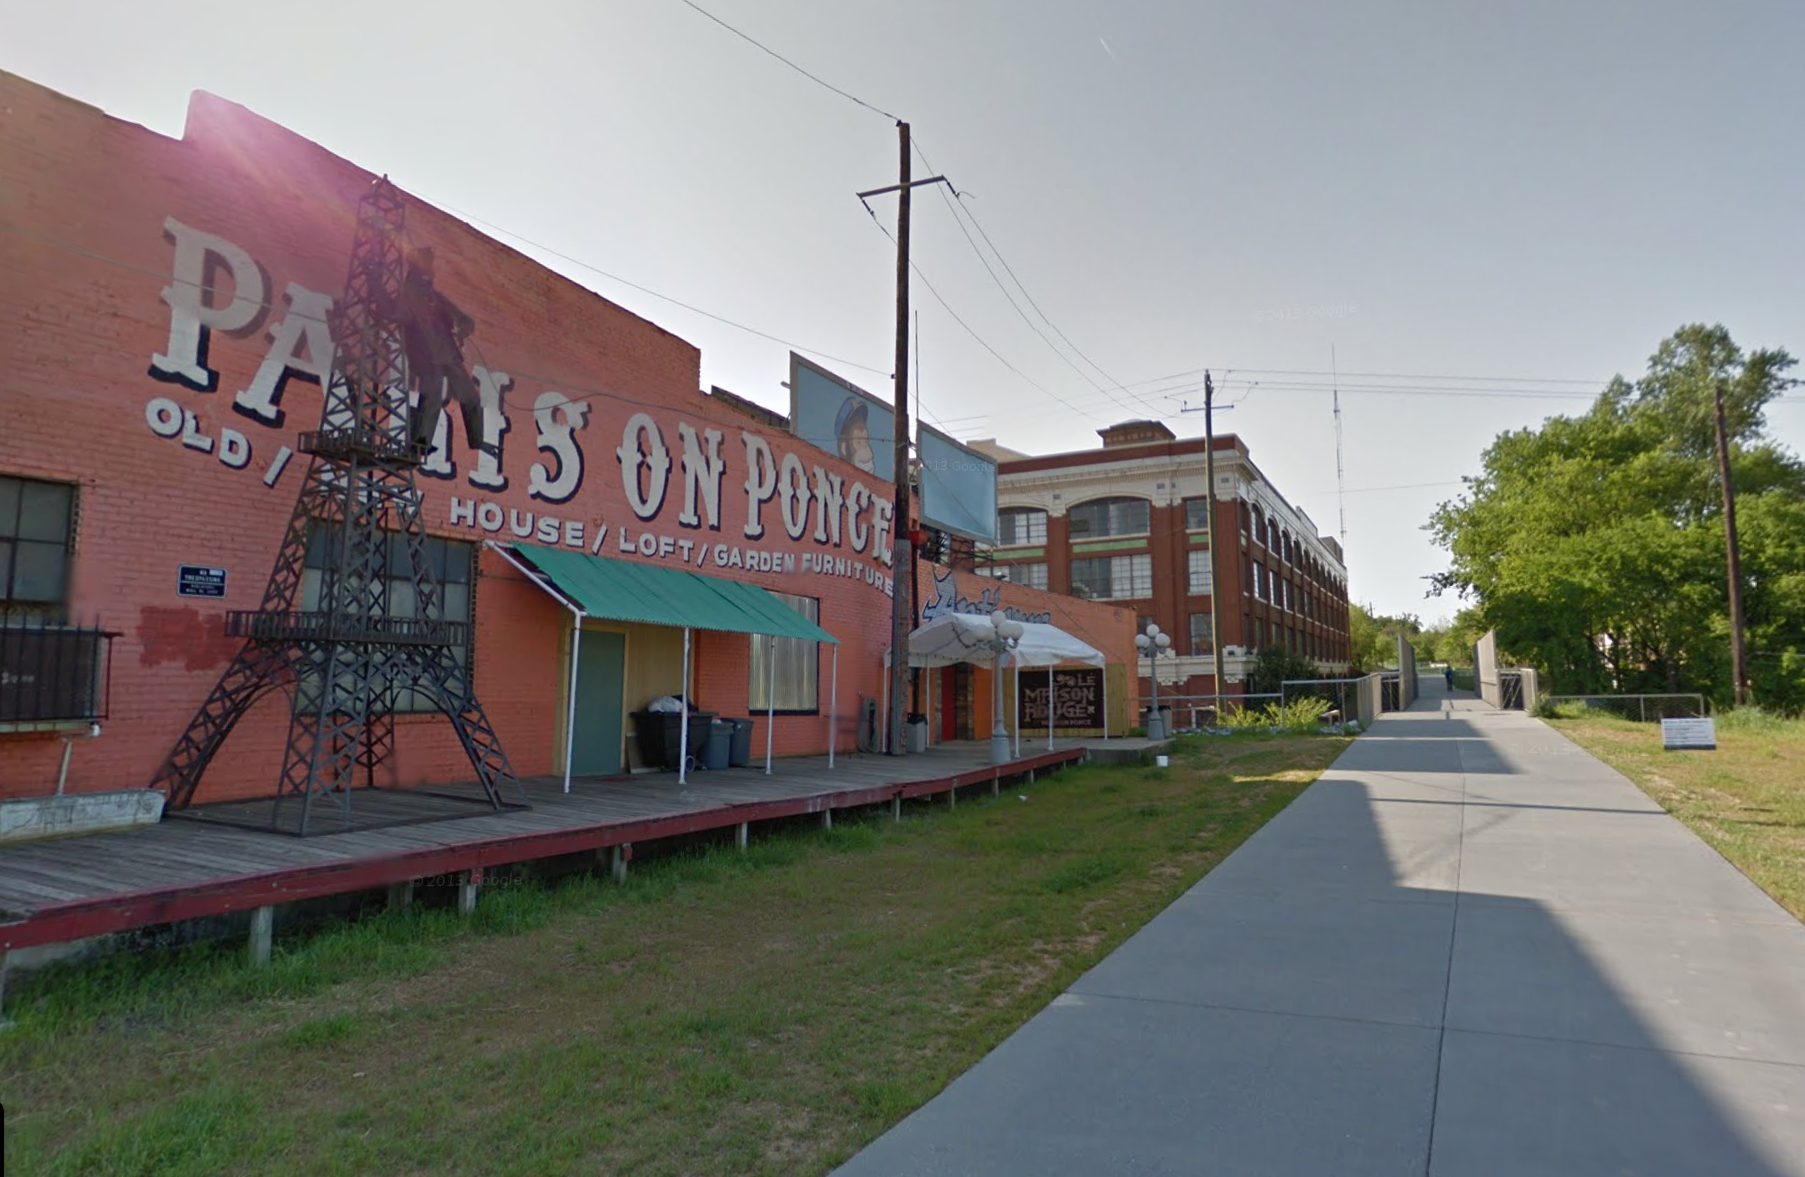 A picture of Paris on Ponce, painted orange with meal artwork on the porch, standing next to the Beltline's Eastside Trail